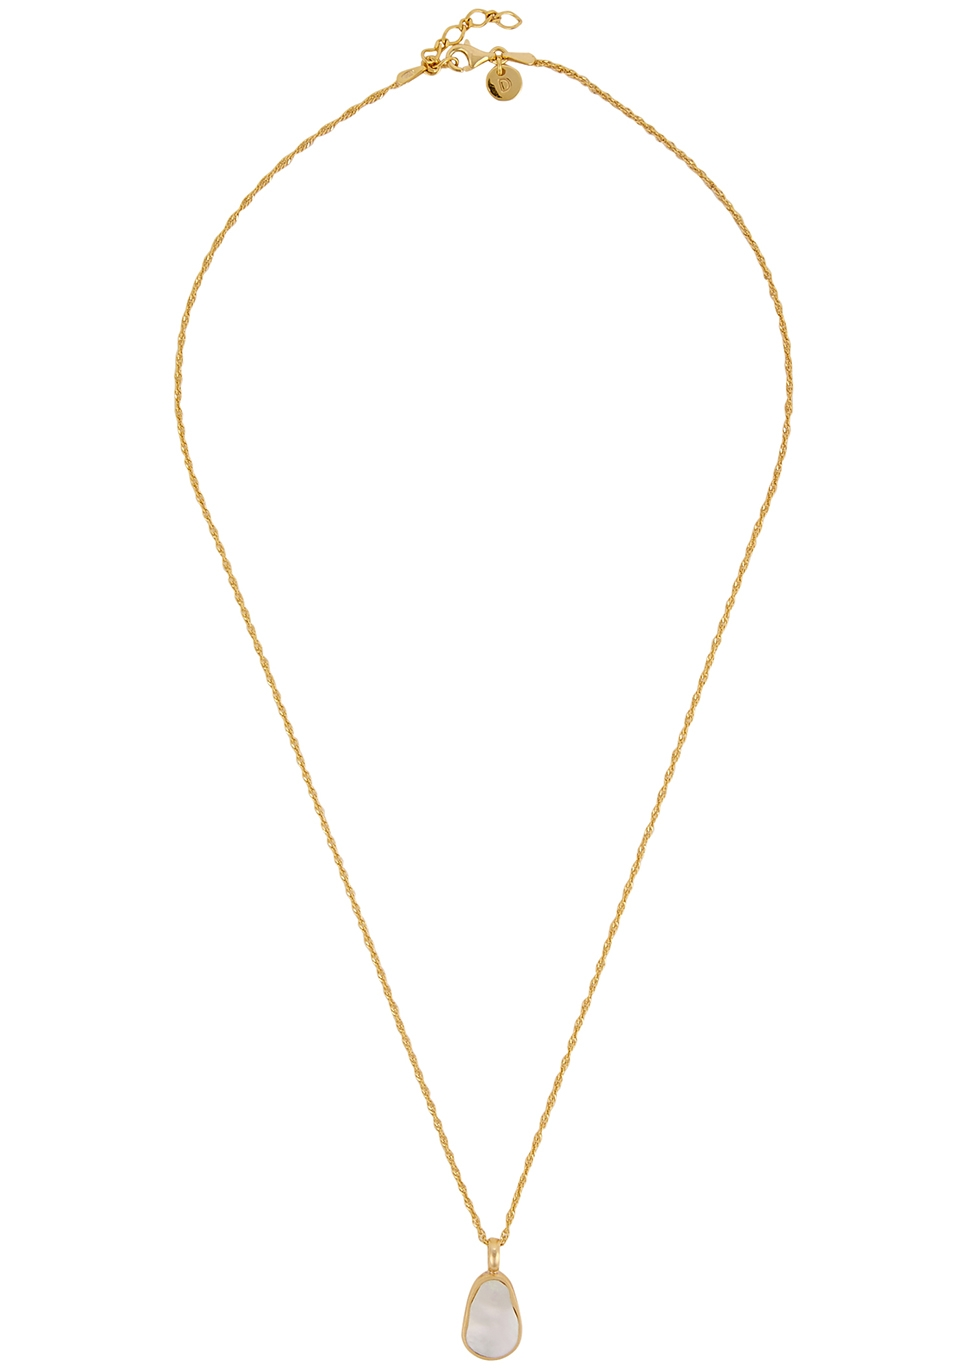 Isla 18kt gold-plated necklace